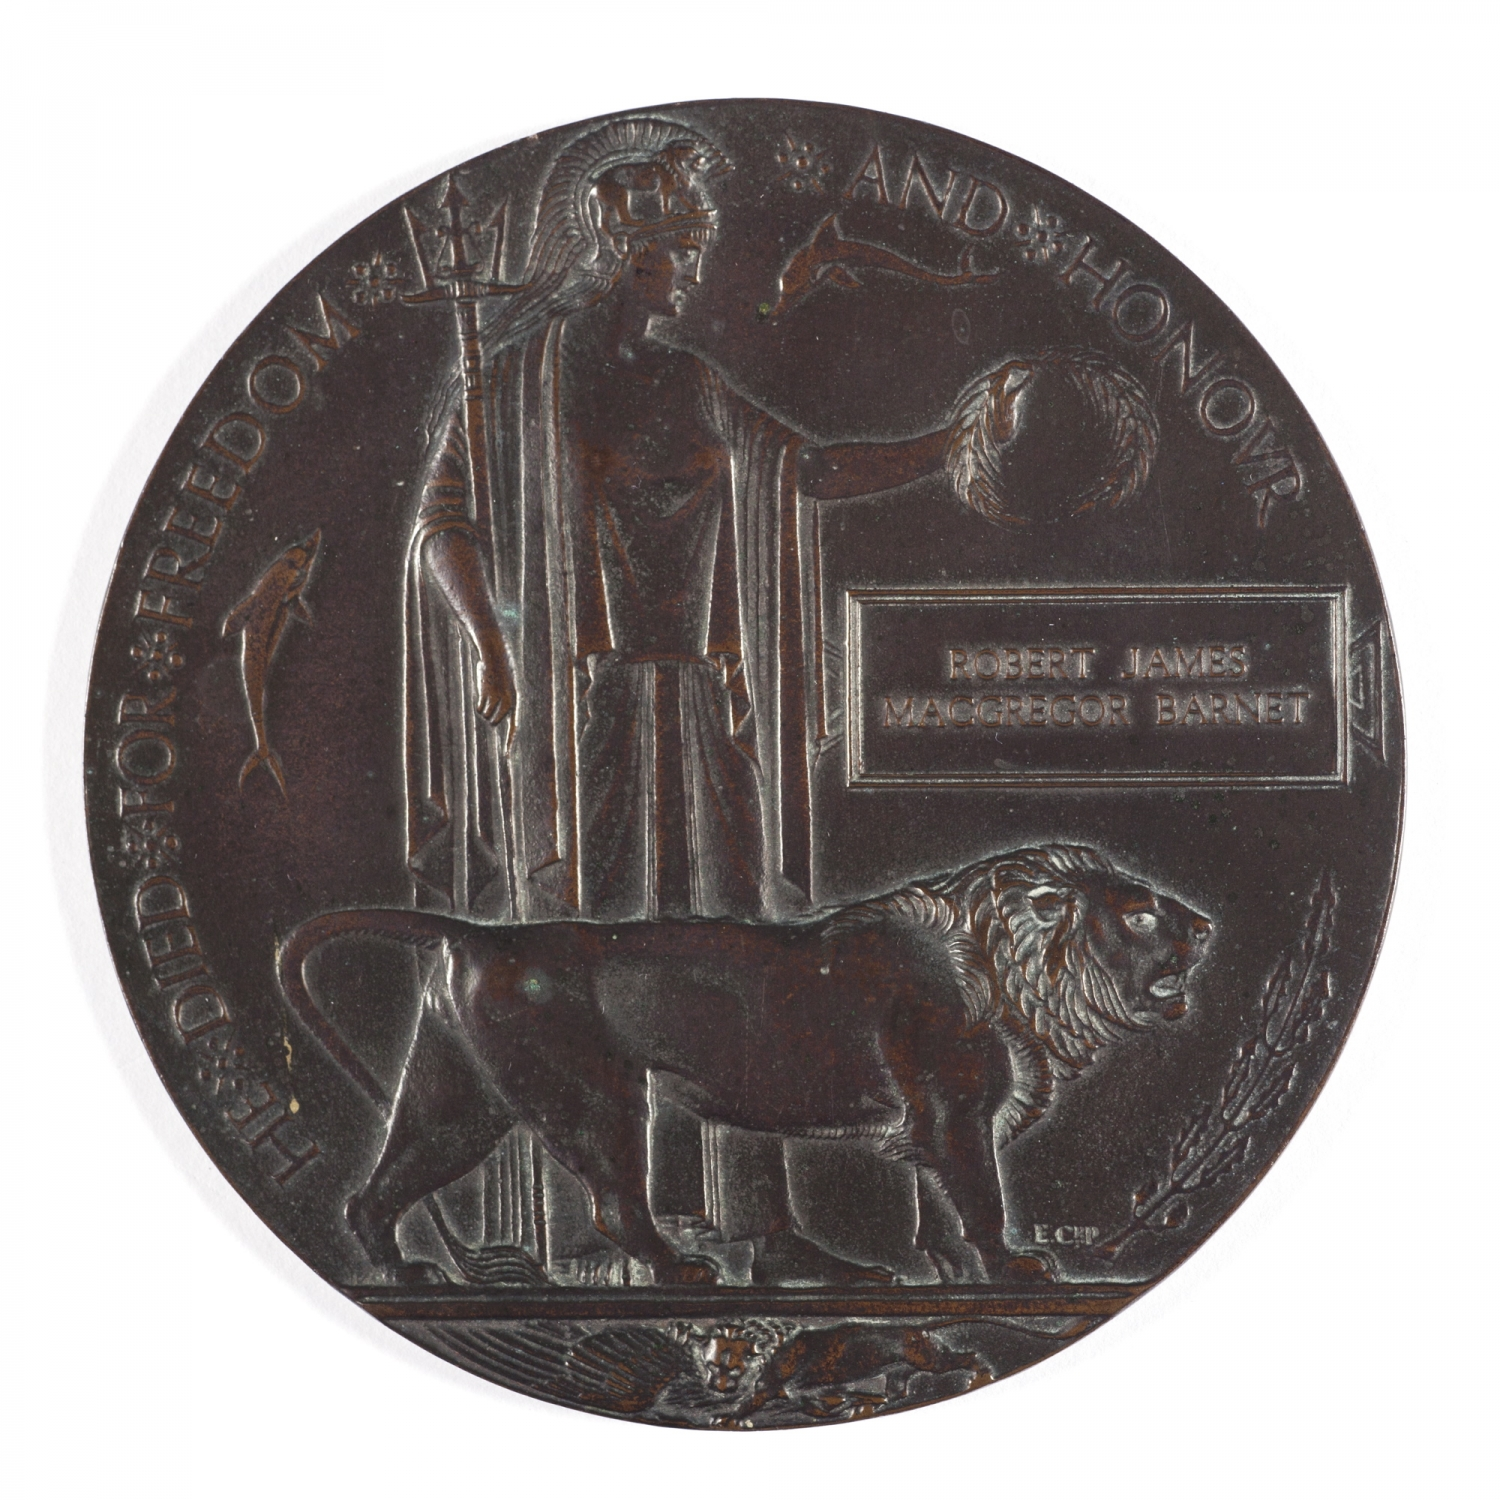 Round metal medallion with relief image.